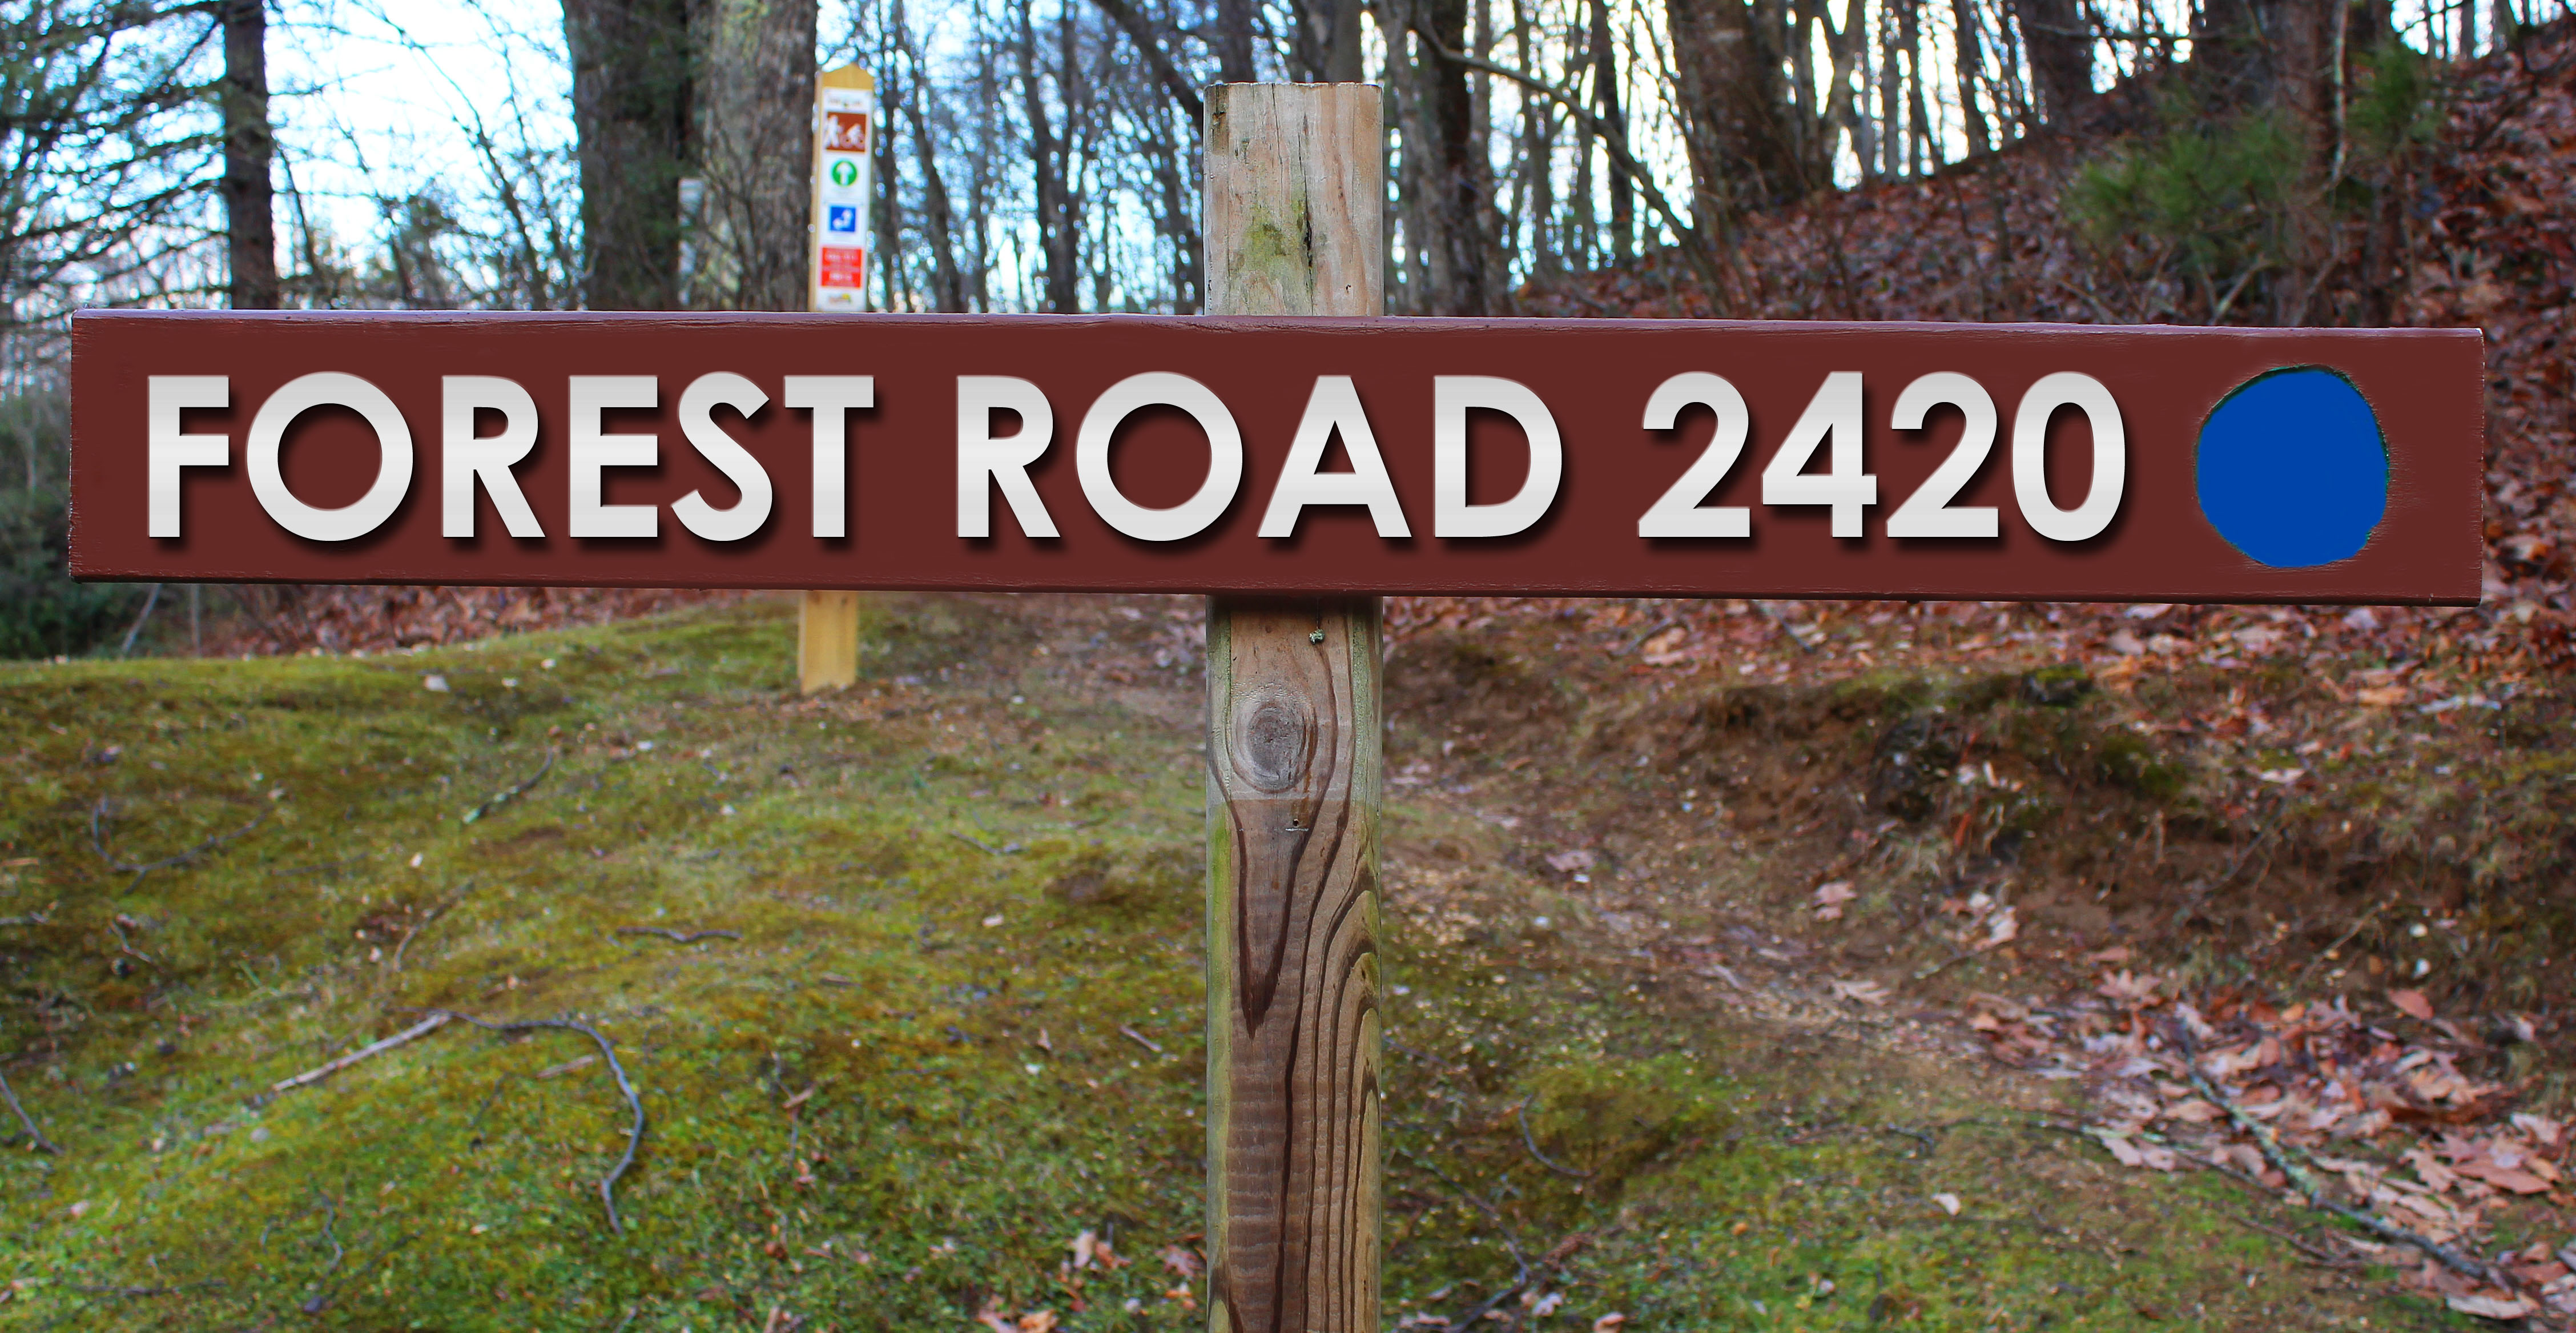 Picture of Forest Road 2420 trail sign